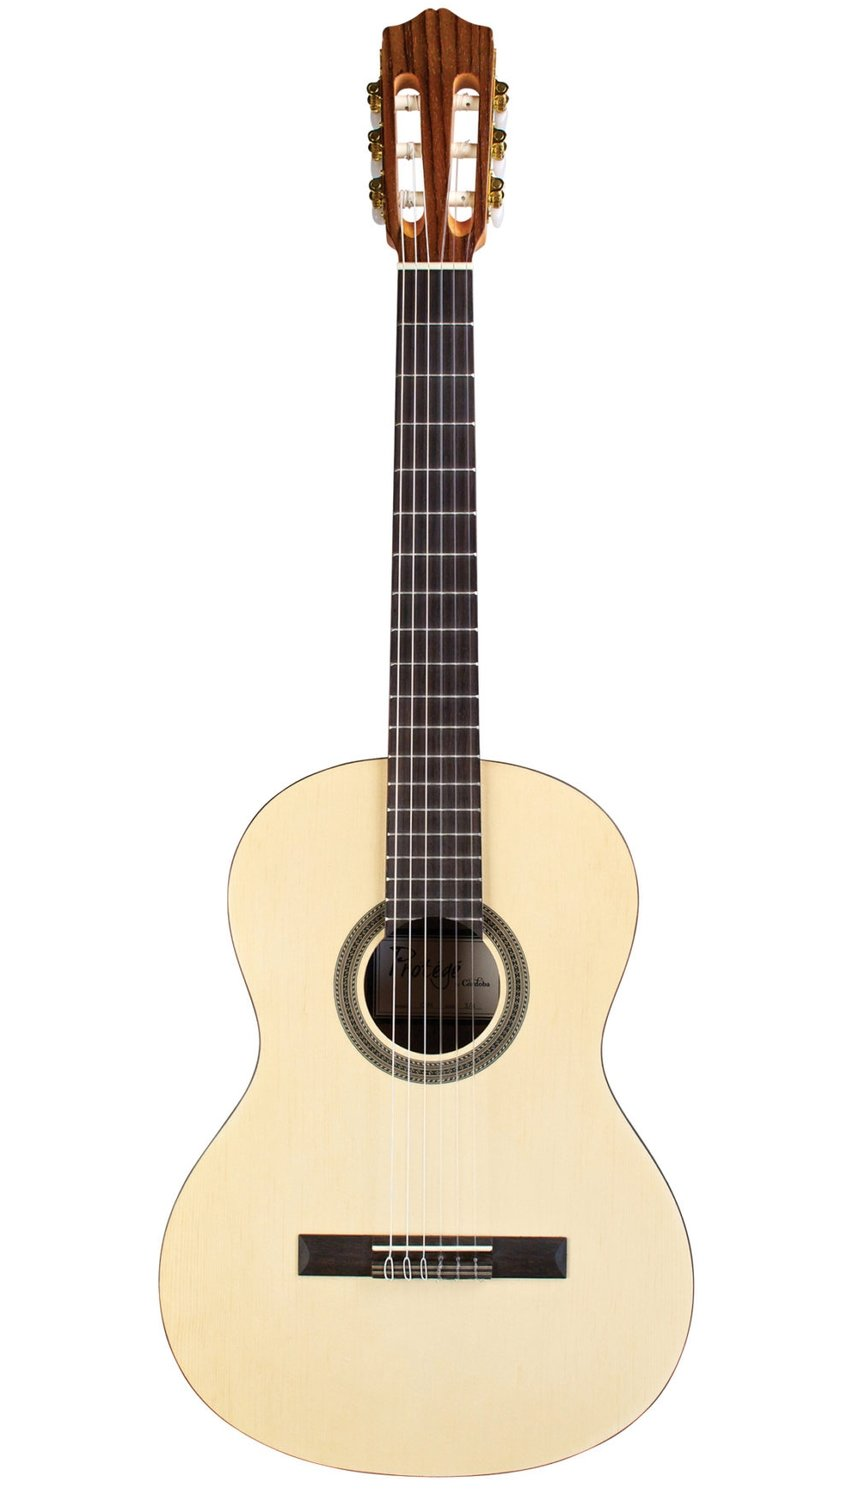 Cordoba C1M 3/4 Size - Satin finish Spruce top, Mahogany b/s - Quality beginner Classical Guitar